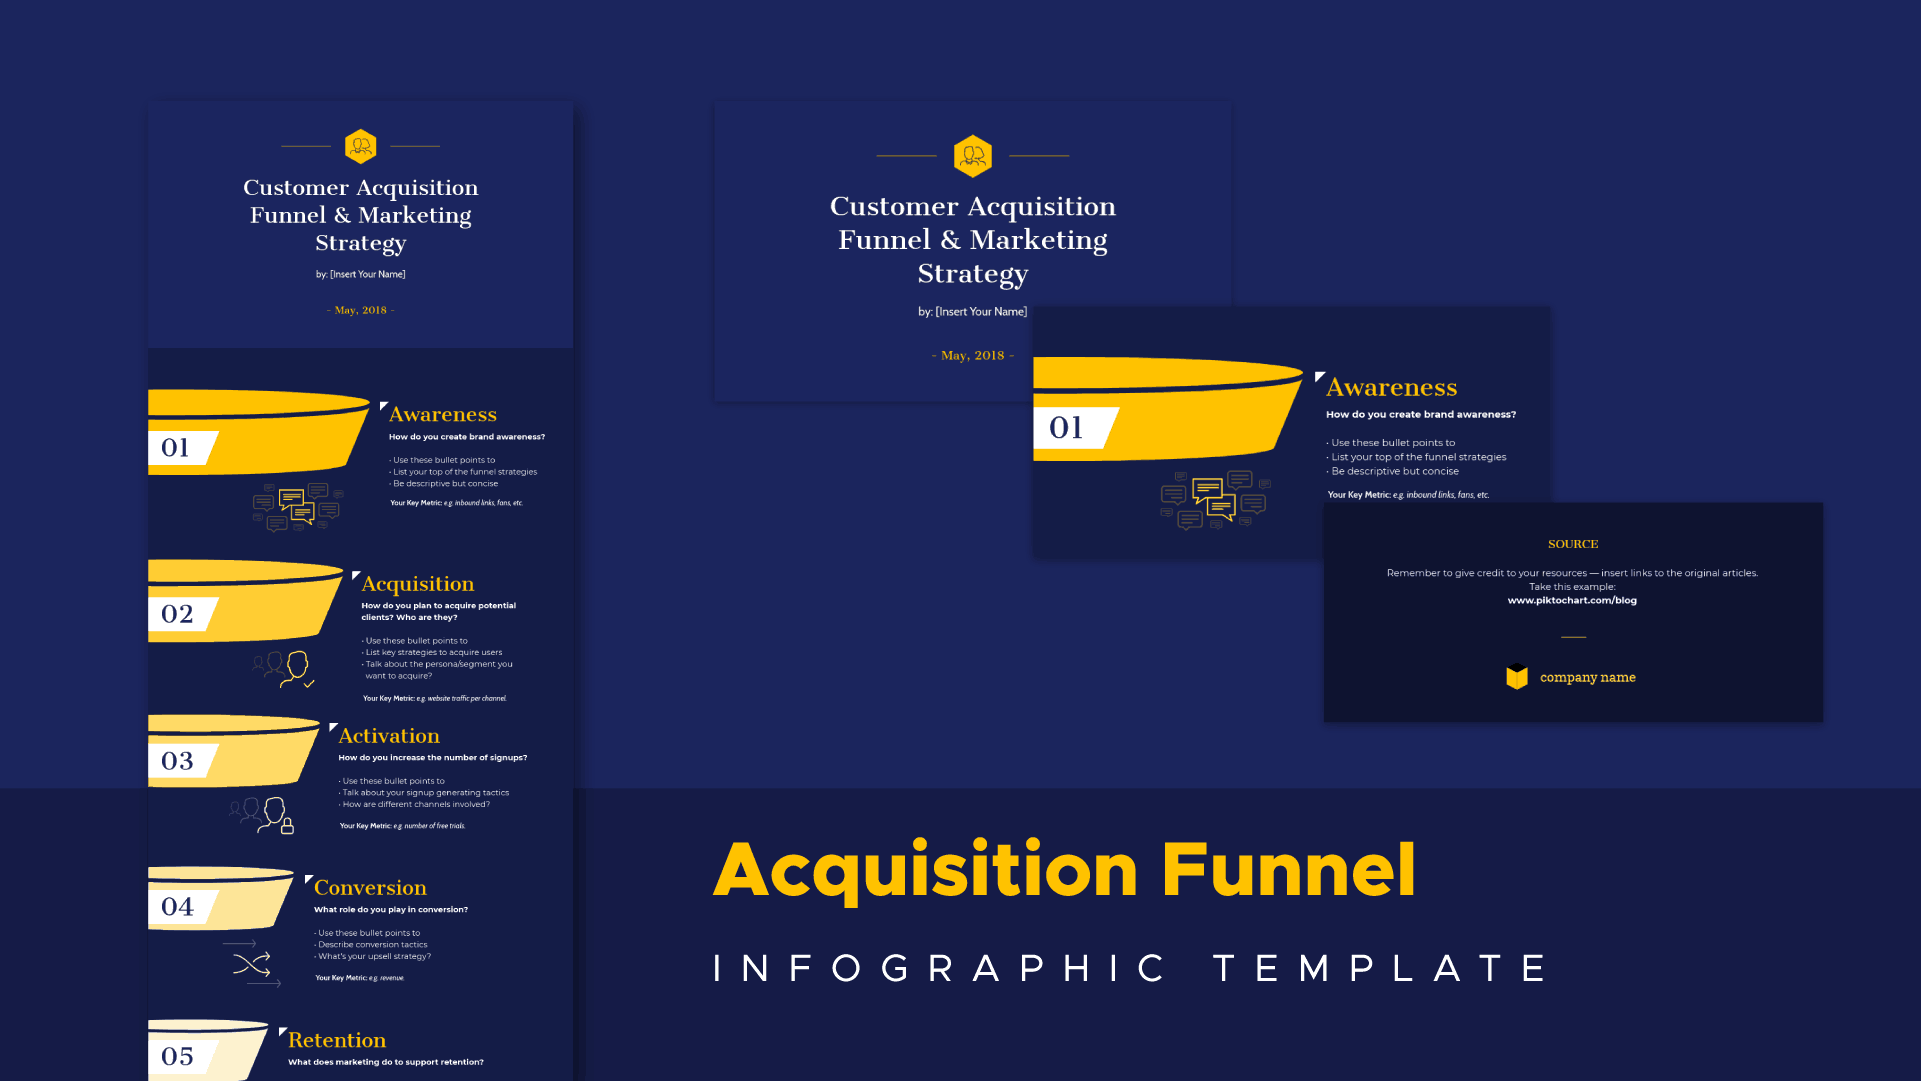 templates-visual_infographic_1148-1-1181475